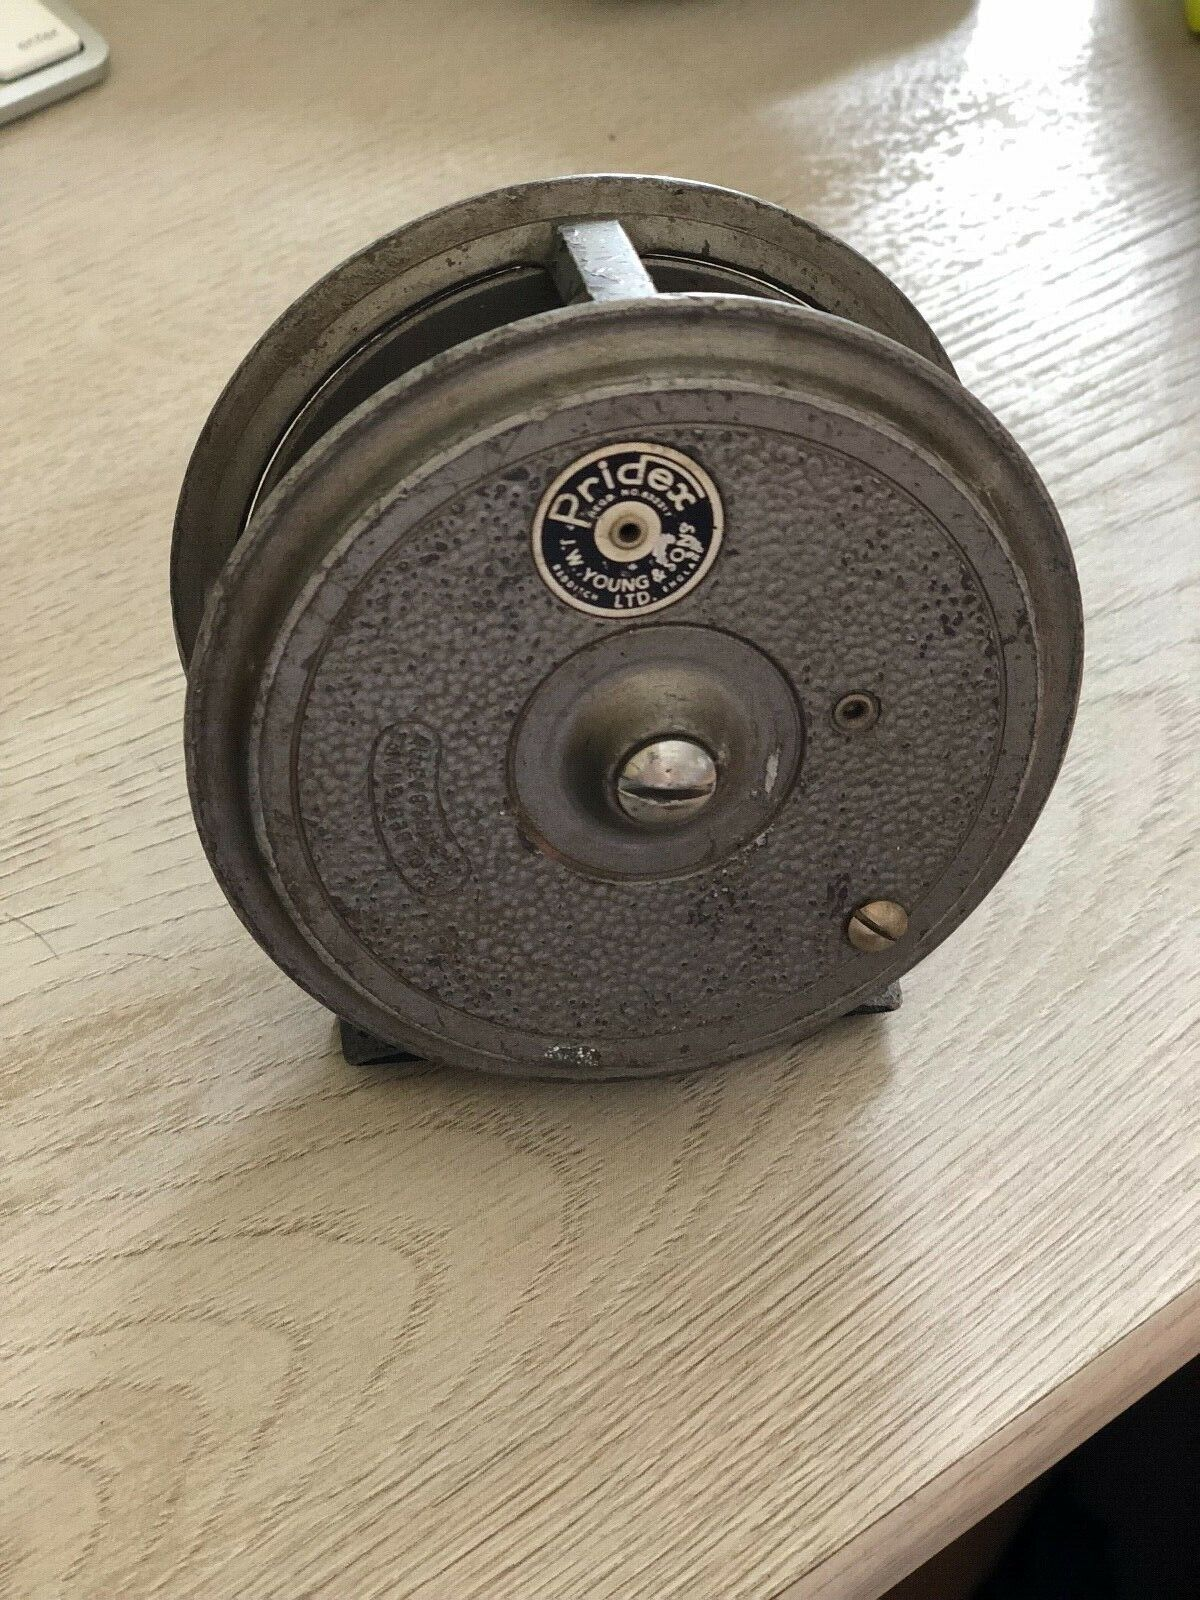 Pridex 1950s Reel J.W. Young and Sons-opa's Old Reel